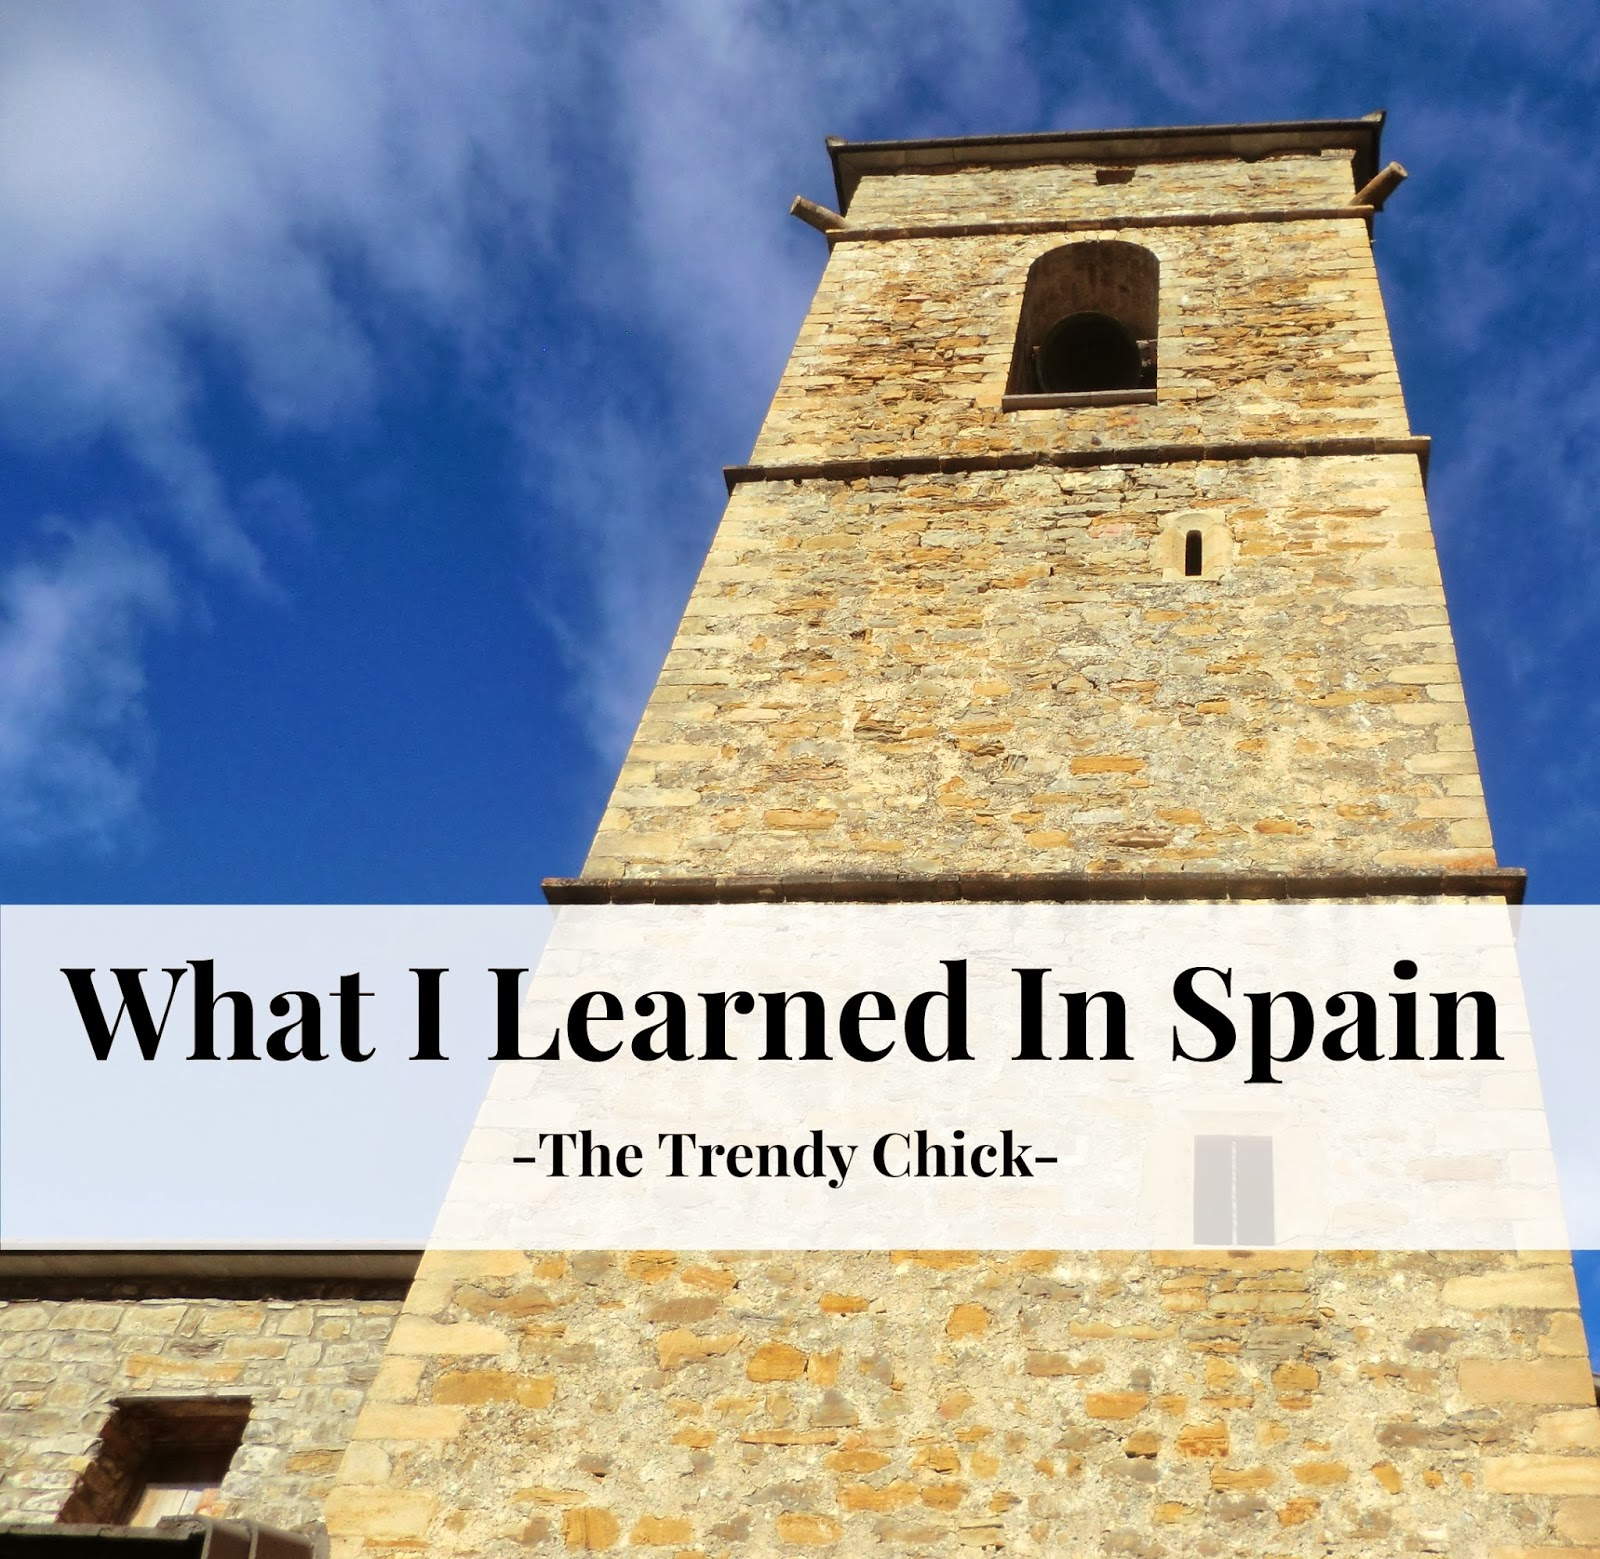 What I Learned In Spain!